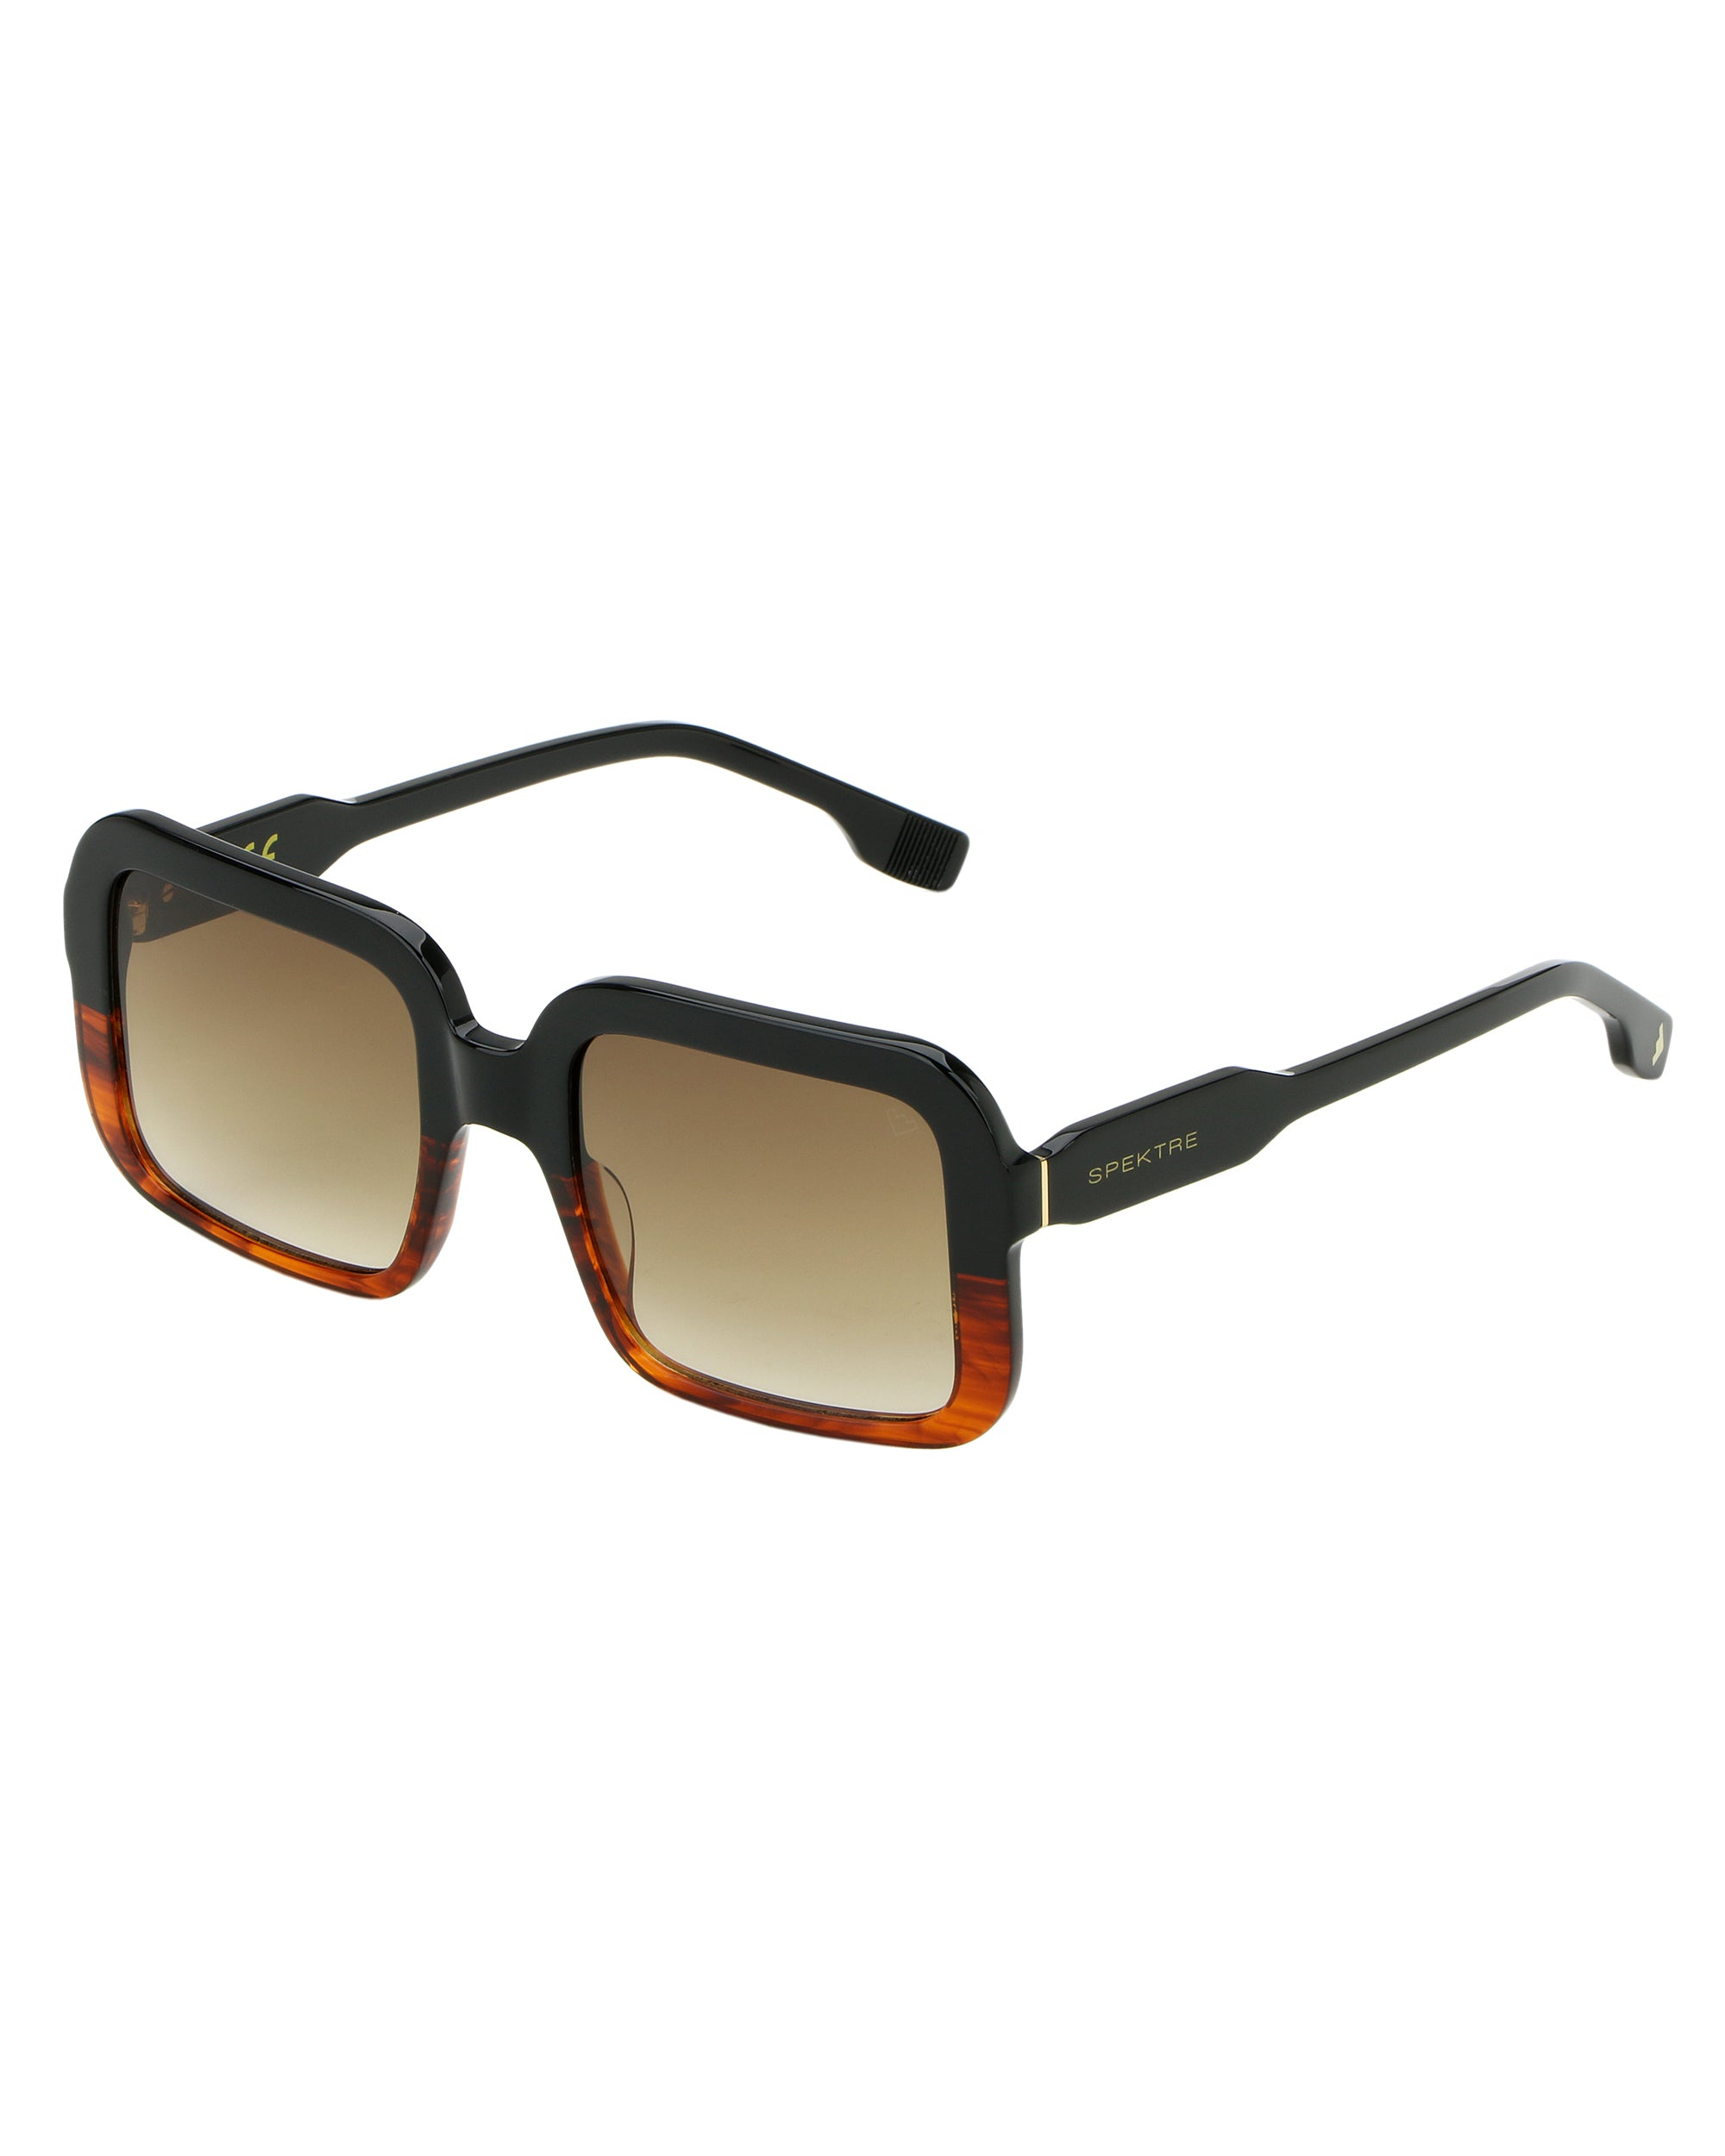 SPEKTRE Judi Sunglasses Black & Gradient Brown